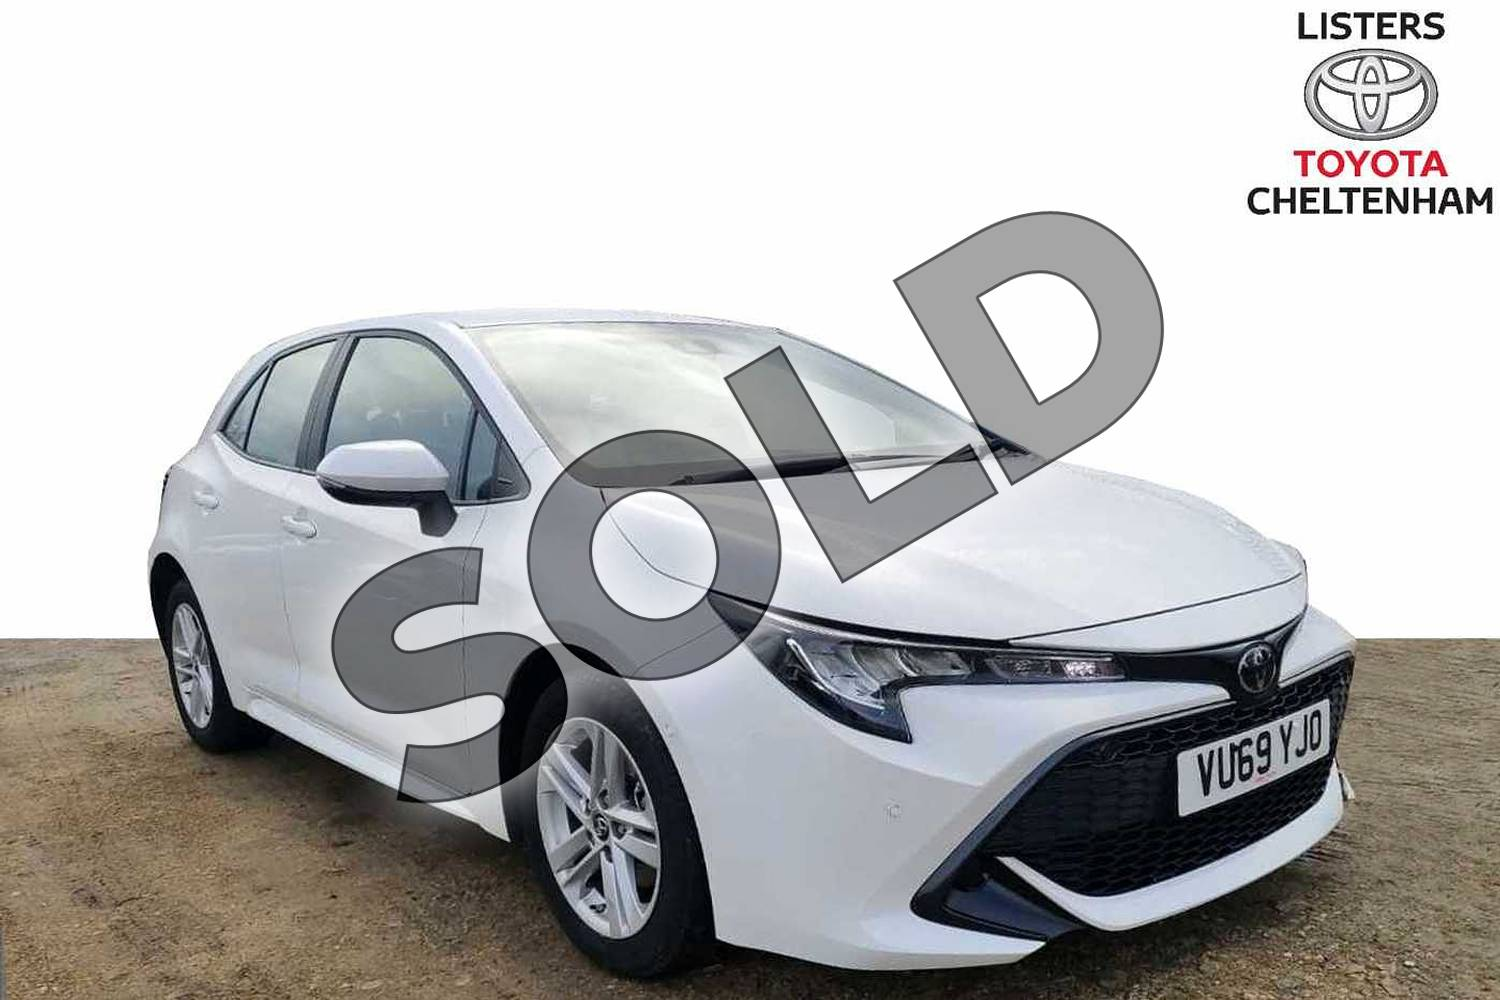 2019 Toyota Corolla Hatchback 1.2T VVT-i Icon Tech 5dr in Pure White at Listers Toyota Cheltenham